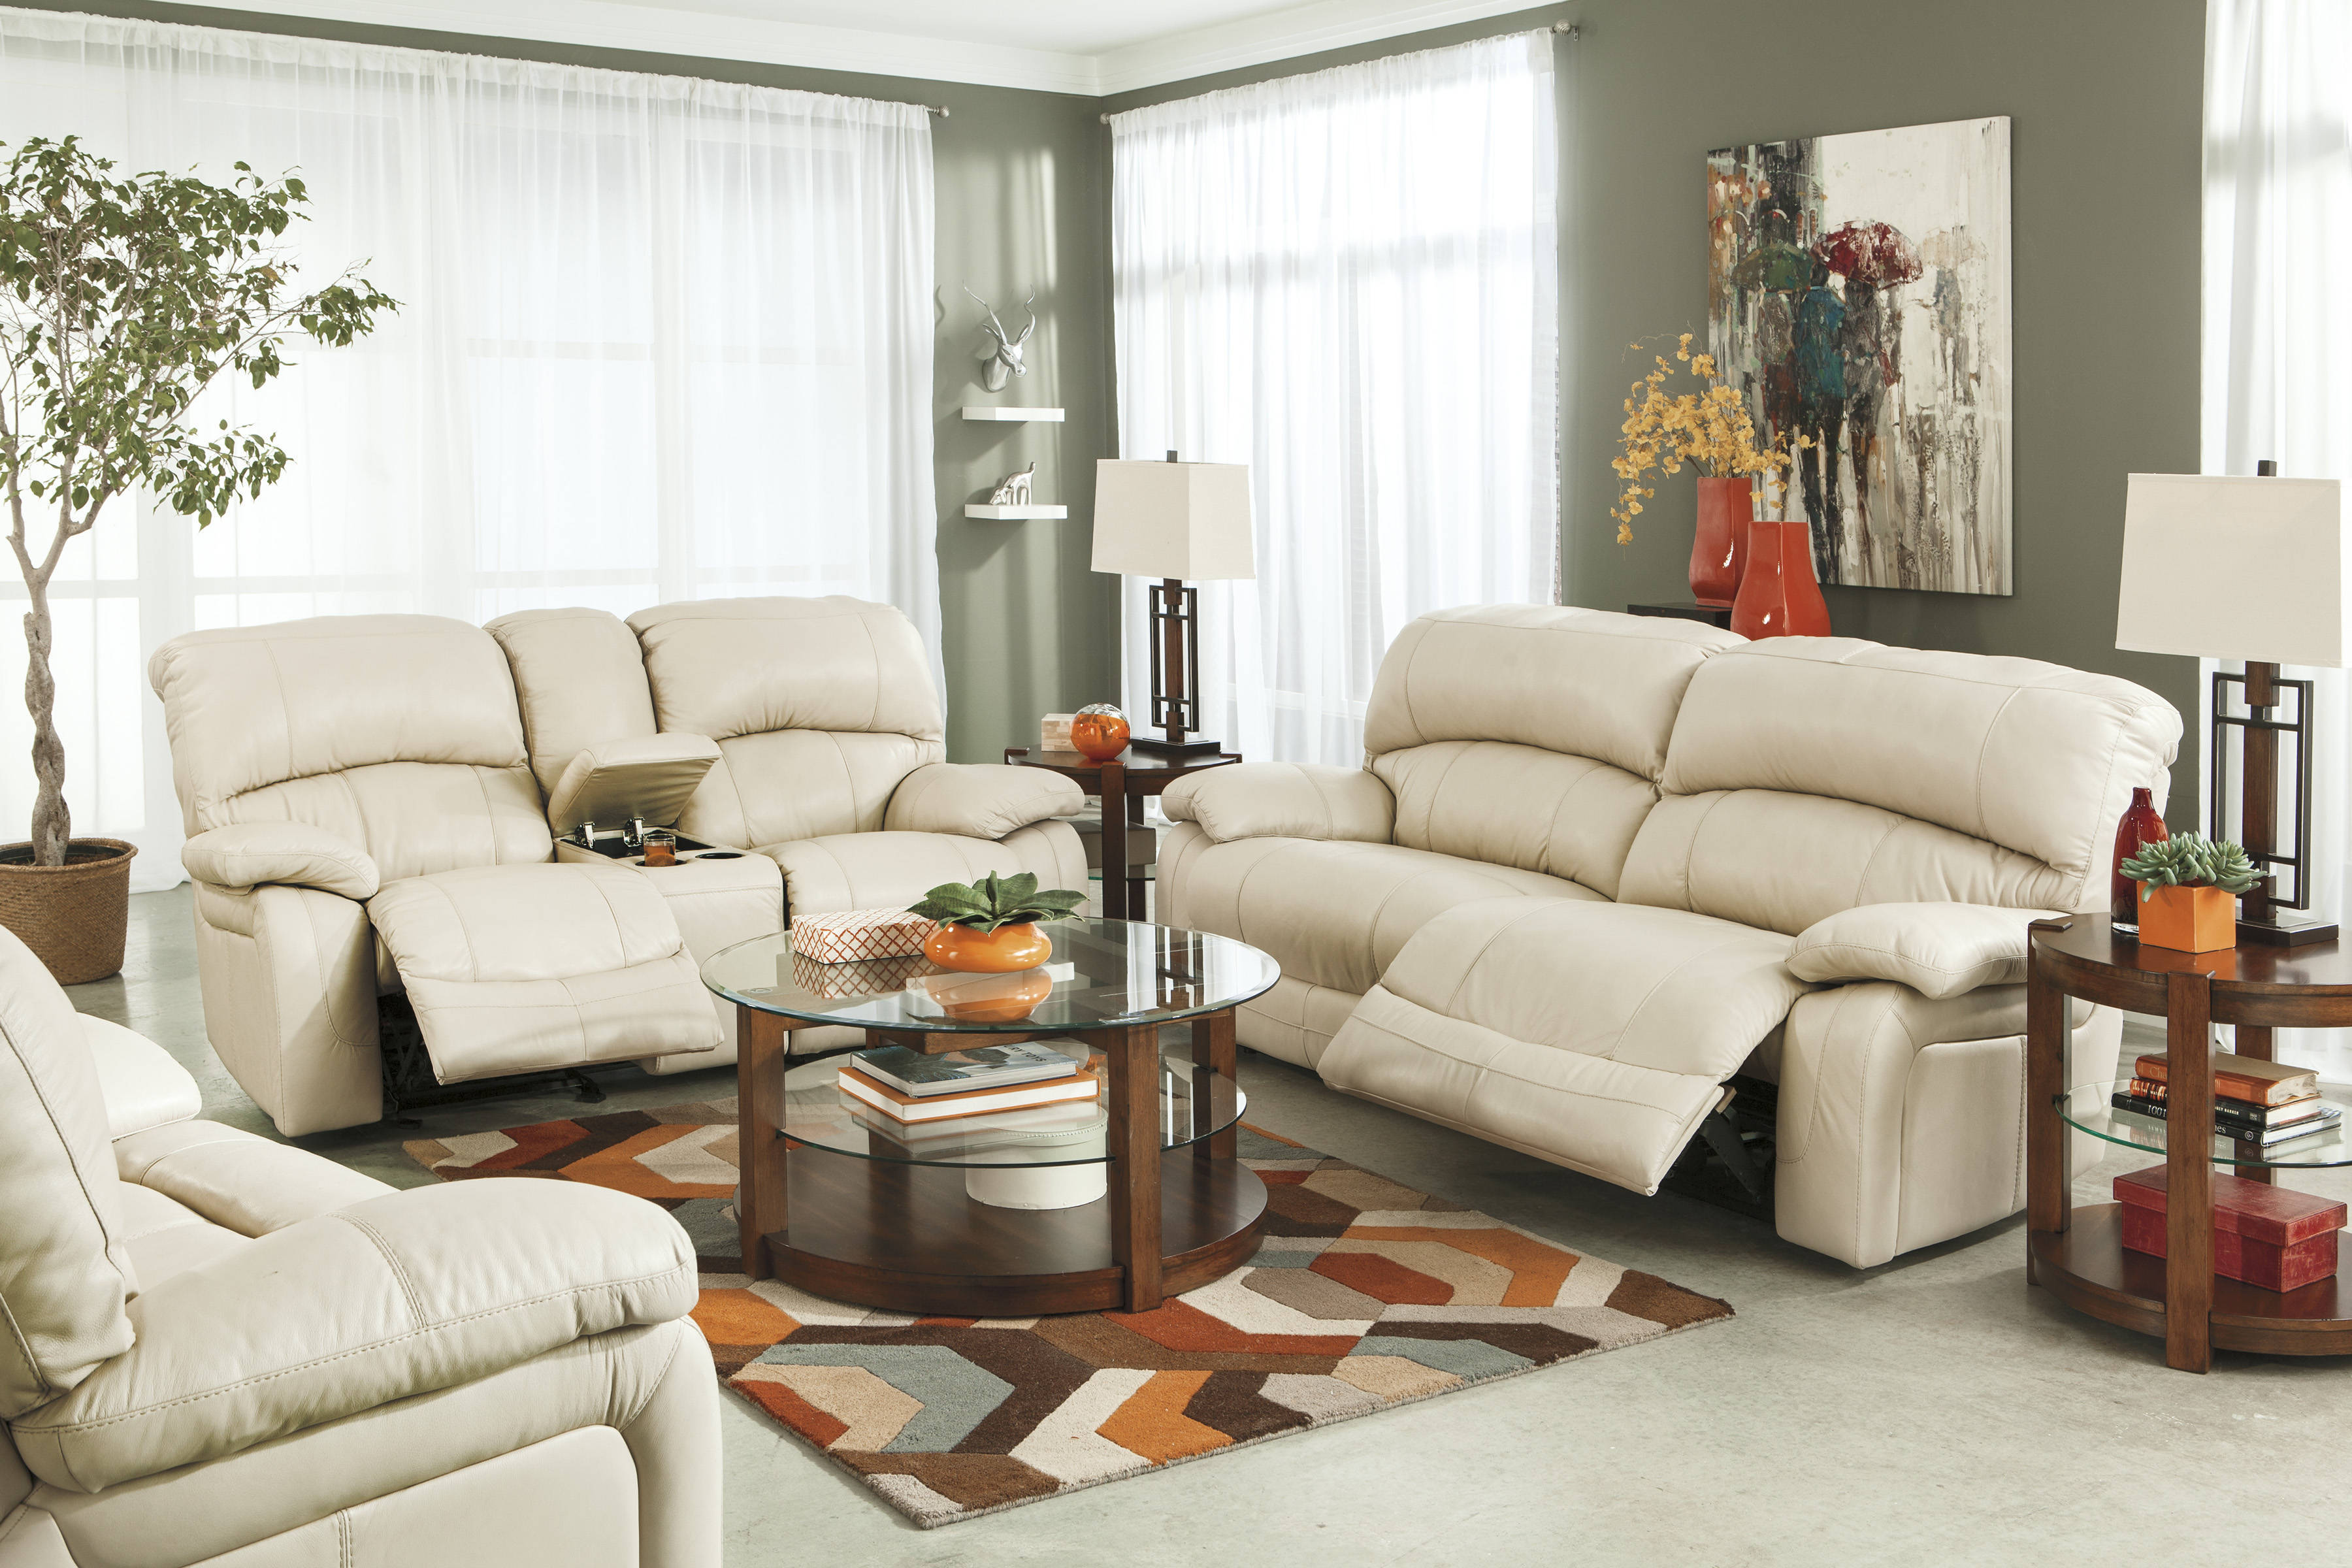 cream leather living room chairs damacio cream leather 3pc living room set w recliner the 13608 | ASH U98201 47 43 82 T541